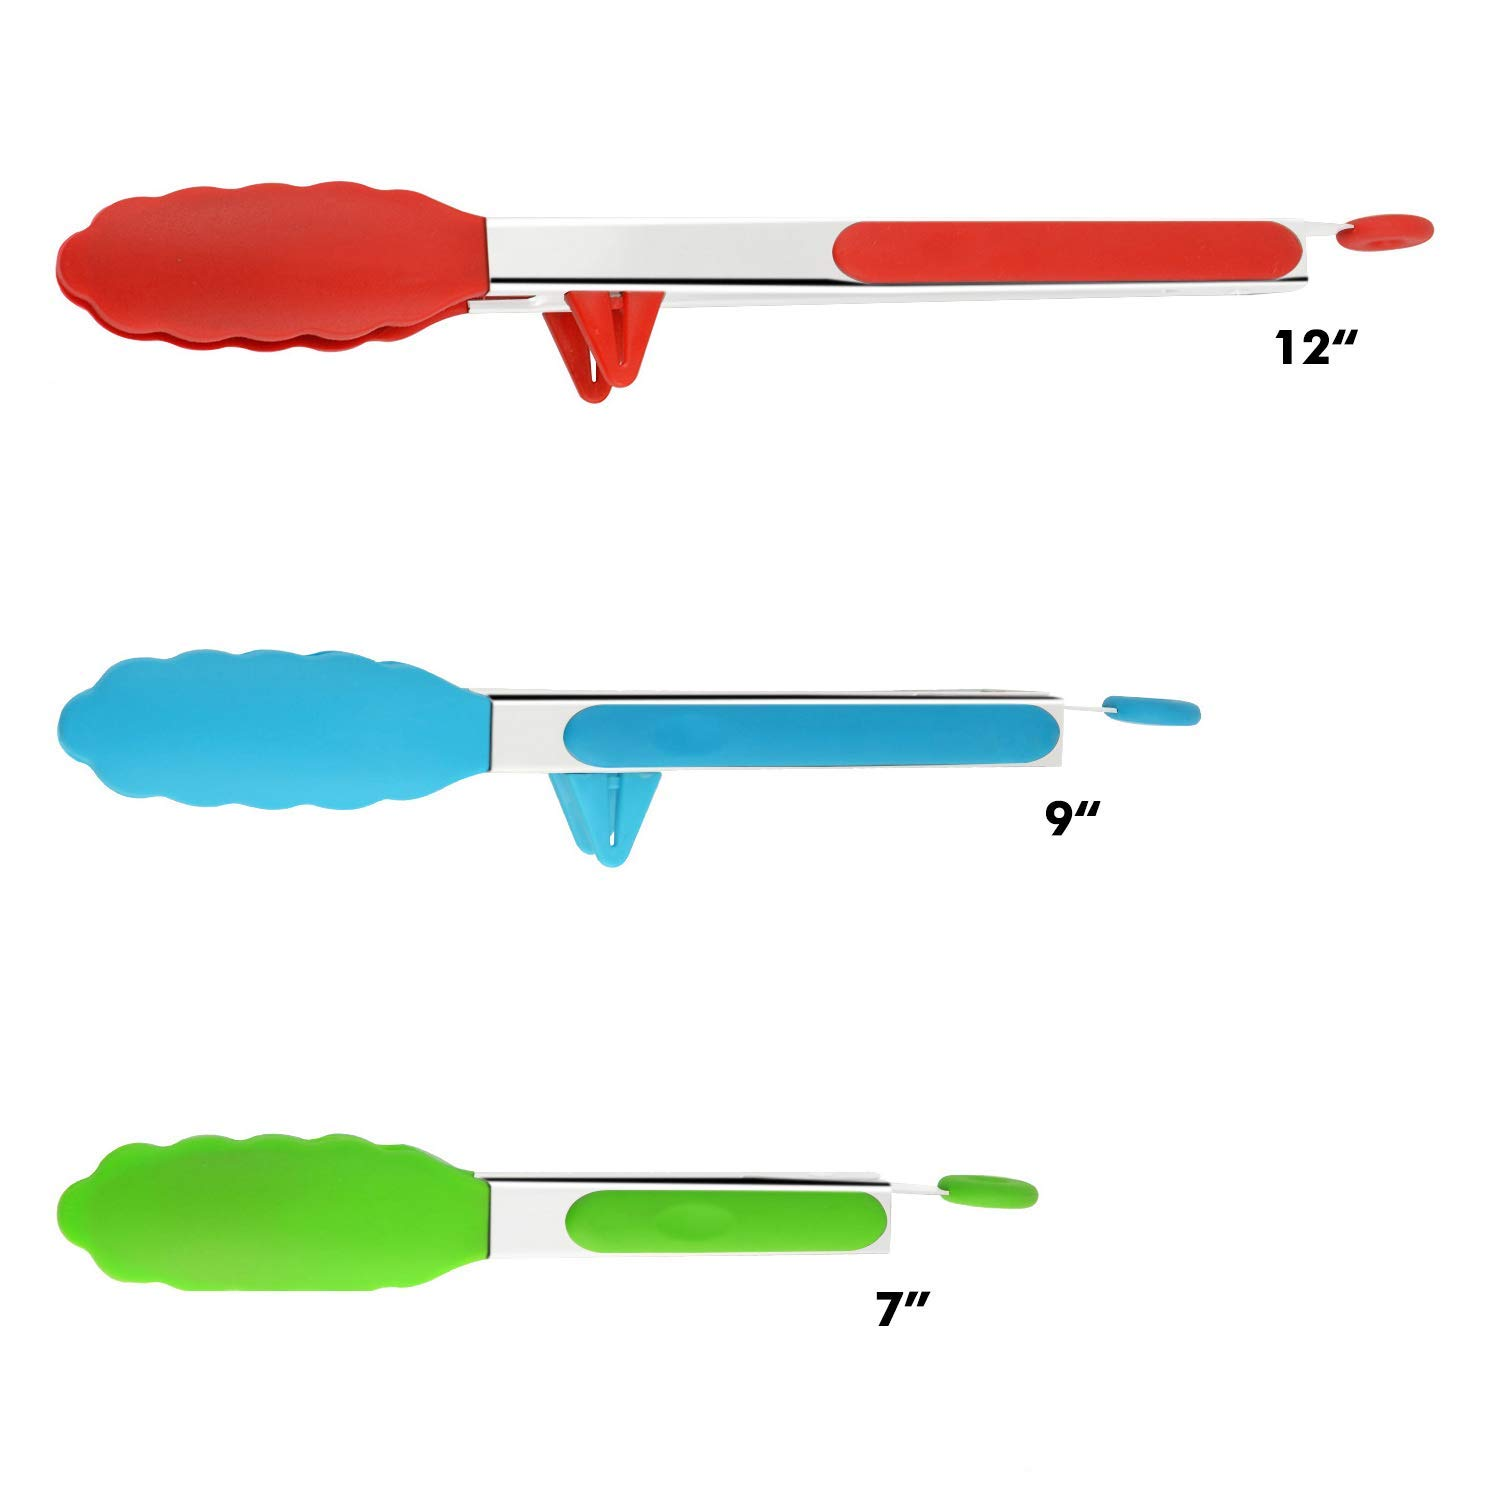 DeroTeno Kitchen Tongs with Silicone Tips and Stands, Cooking Tongs, Bbq Grill Tongs, Set of 3 by DeroTeno (Image #2)